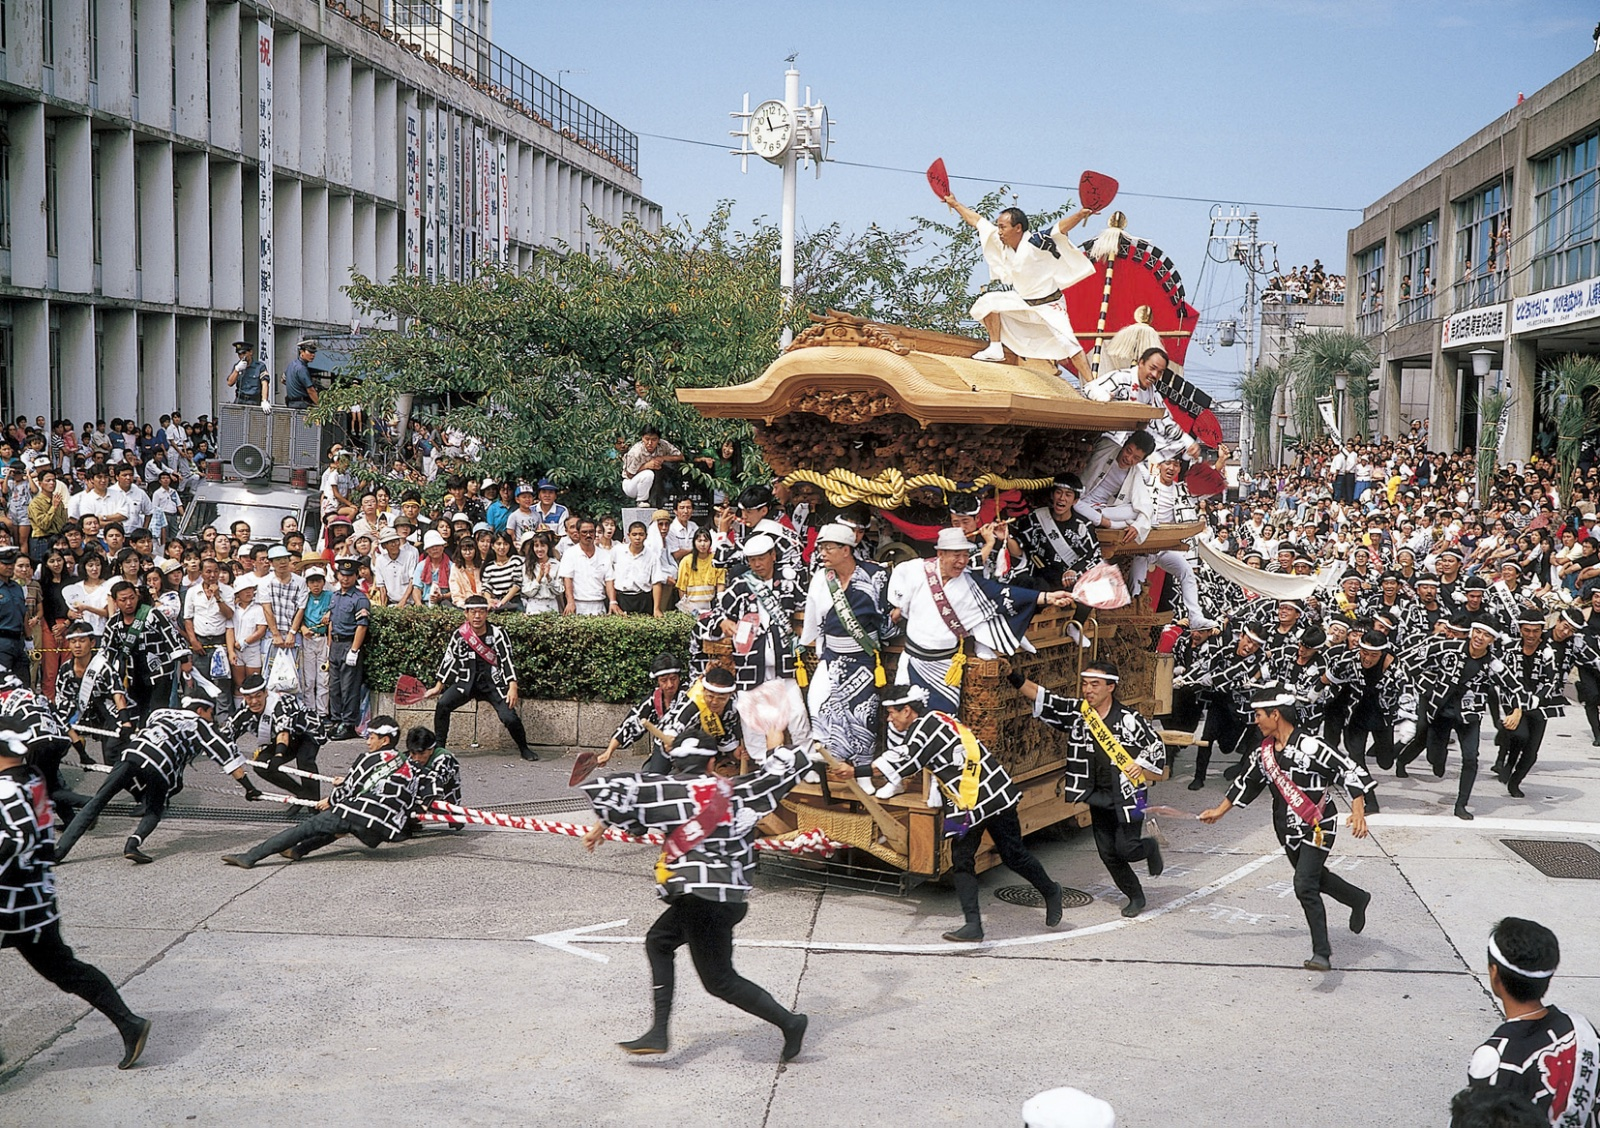 Keep up with the action at the Kishiwada Danjiri Festival in Kansai.